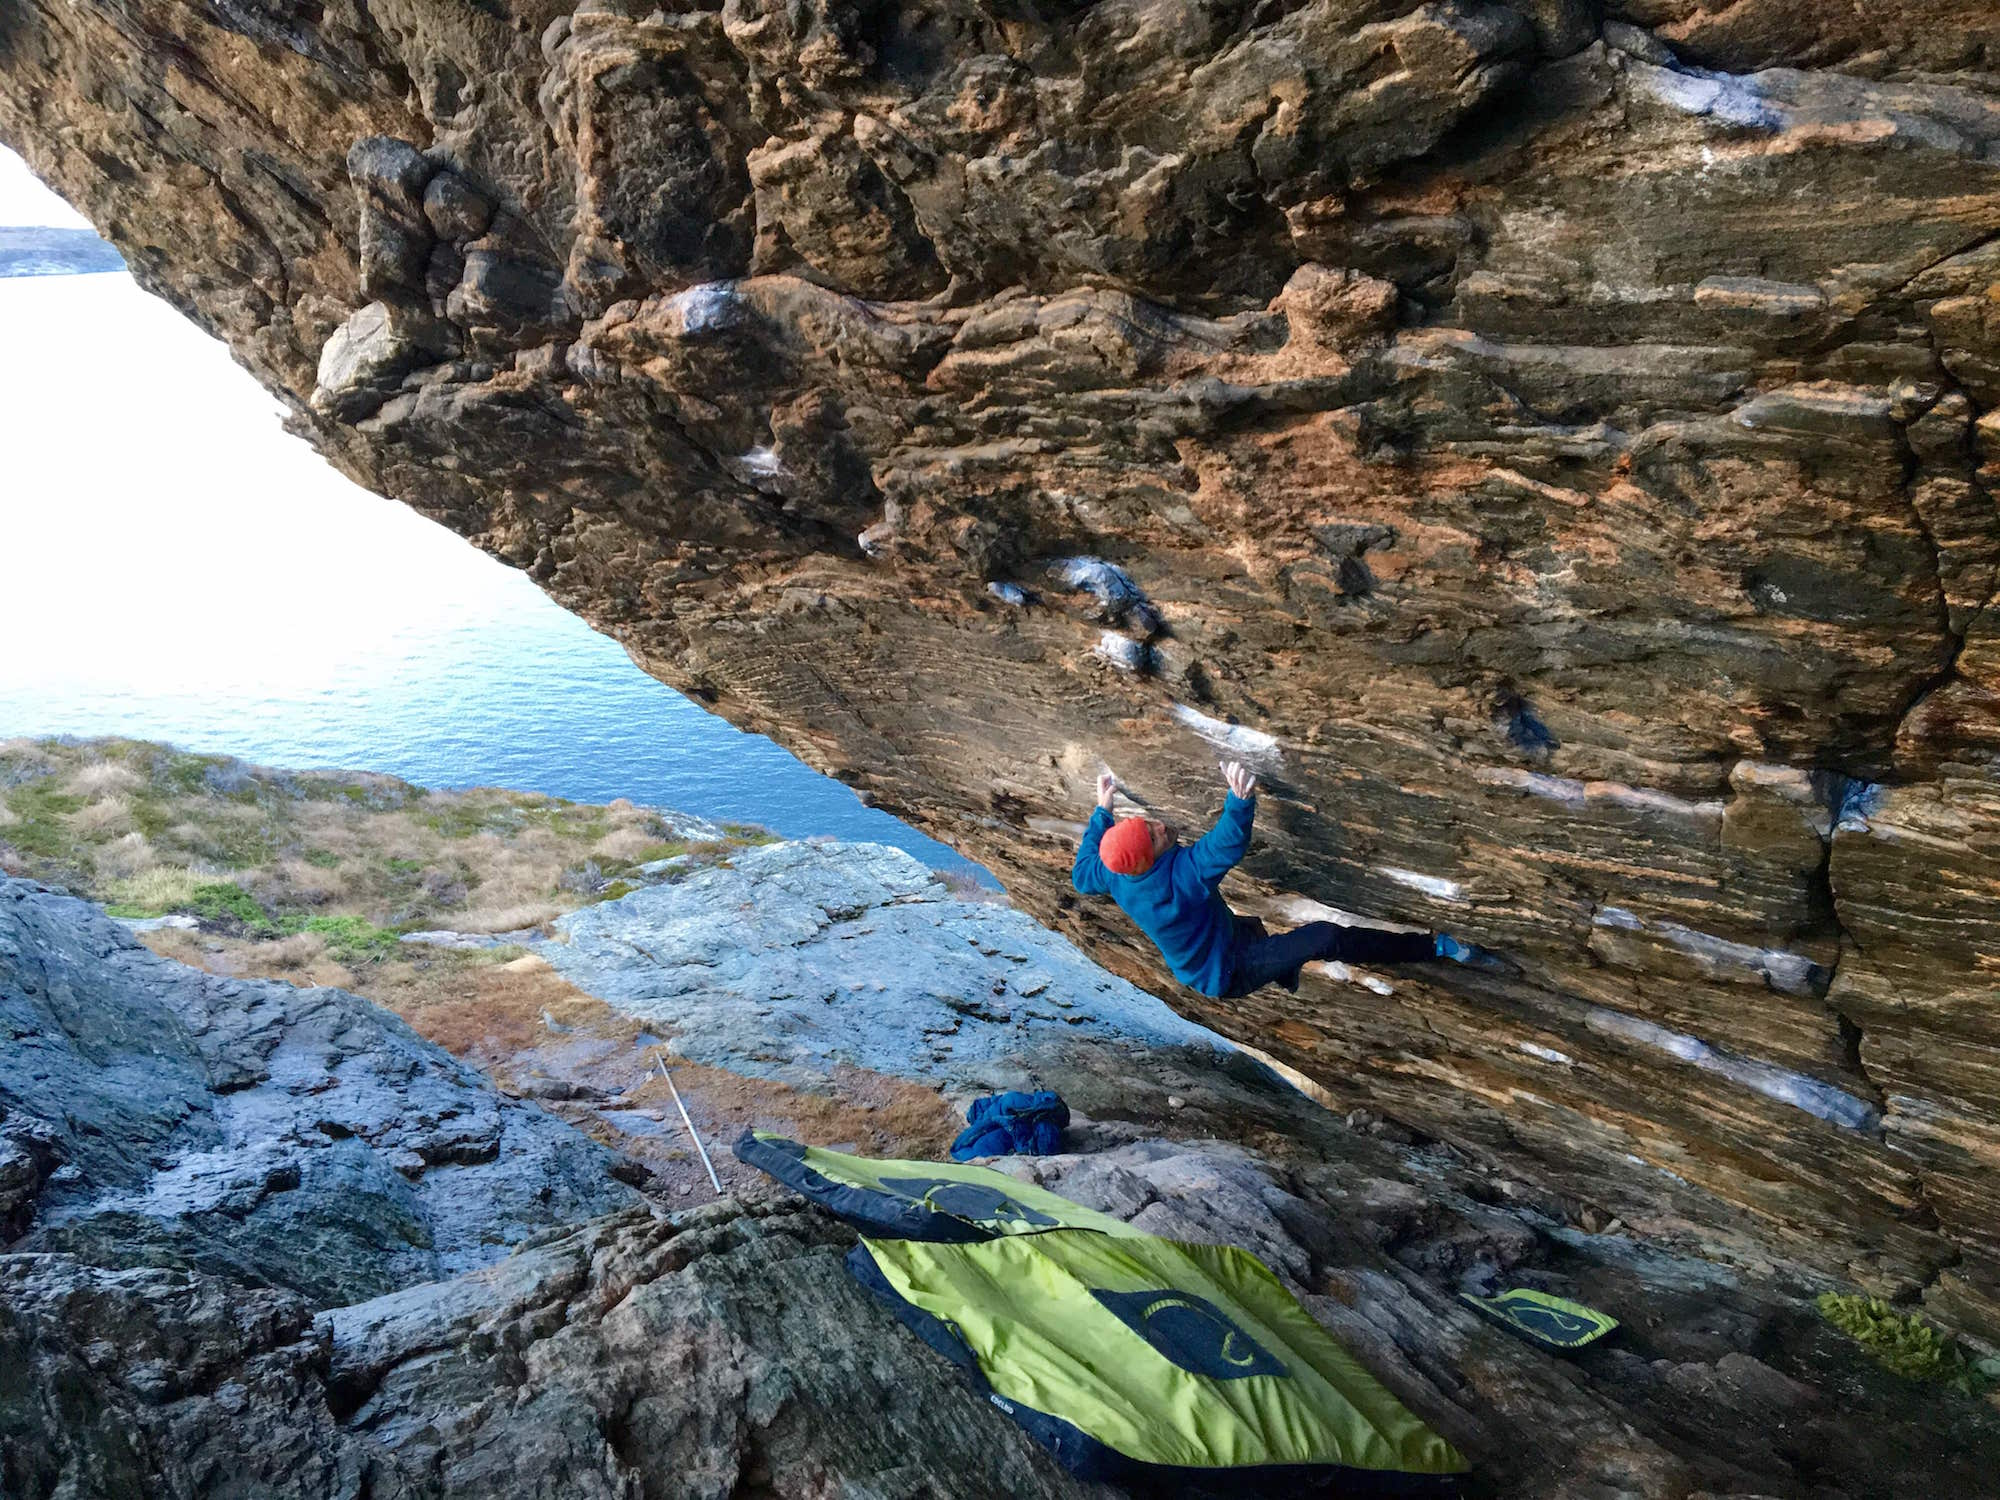 FrictionLabs Athlete Martin Mobråten climbing in Norway